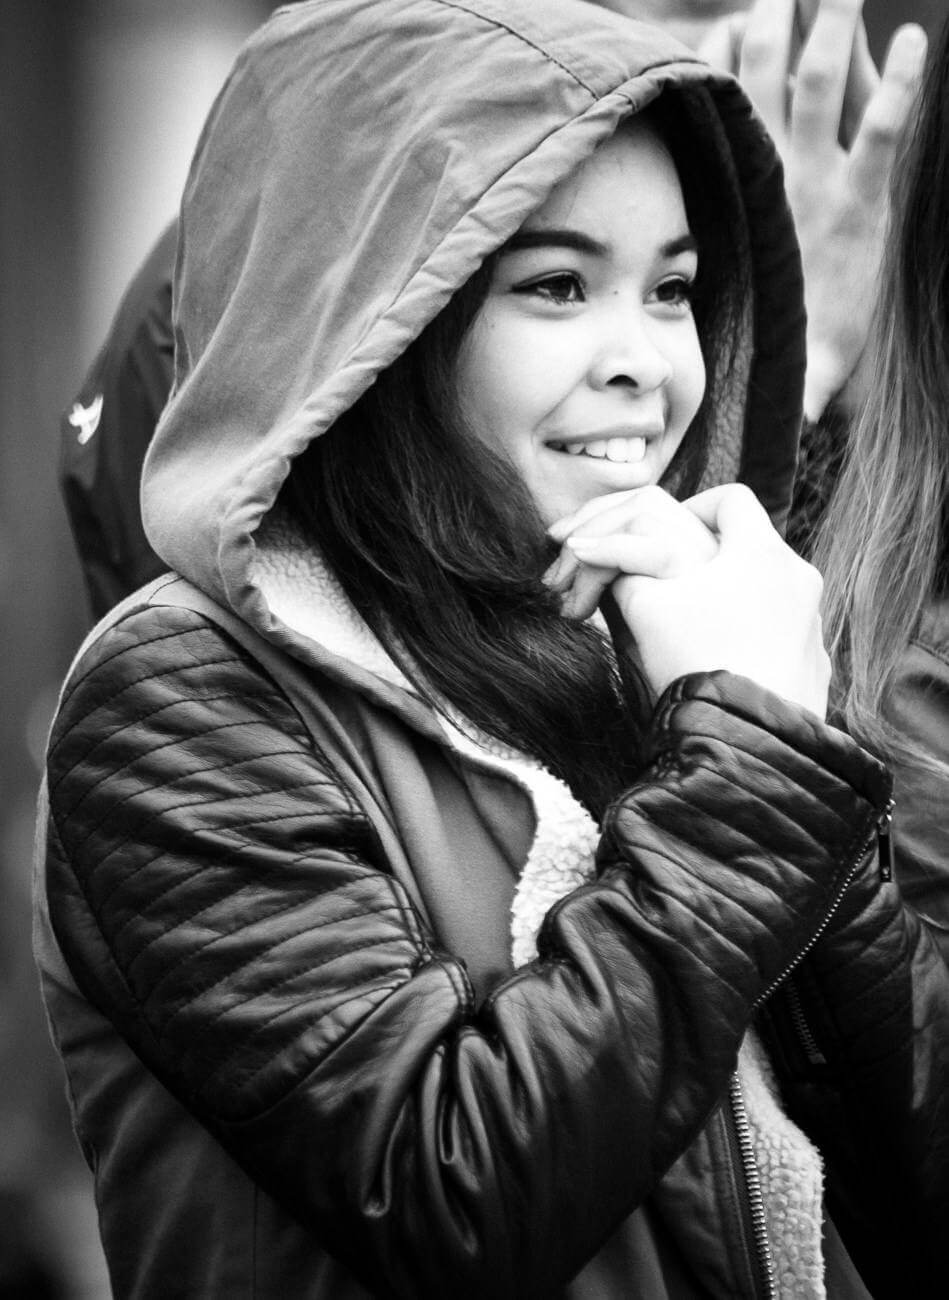 People of Amsterdam - © CuriousZed